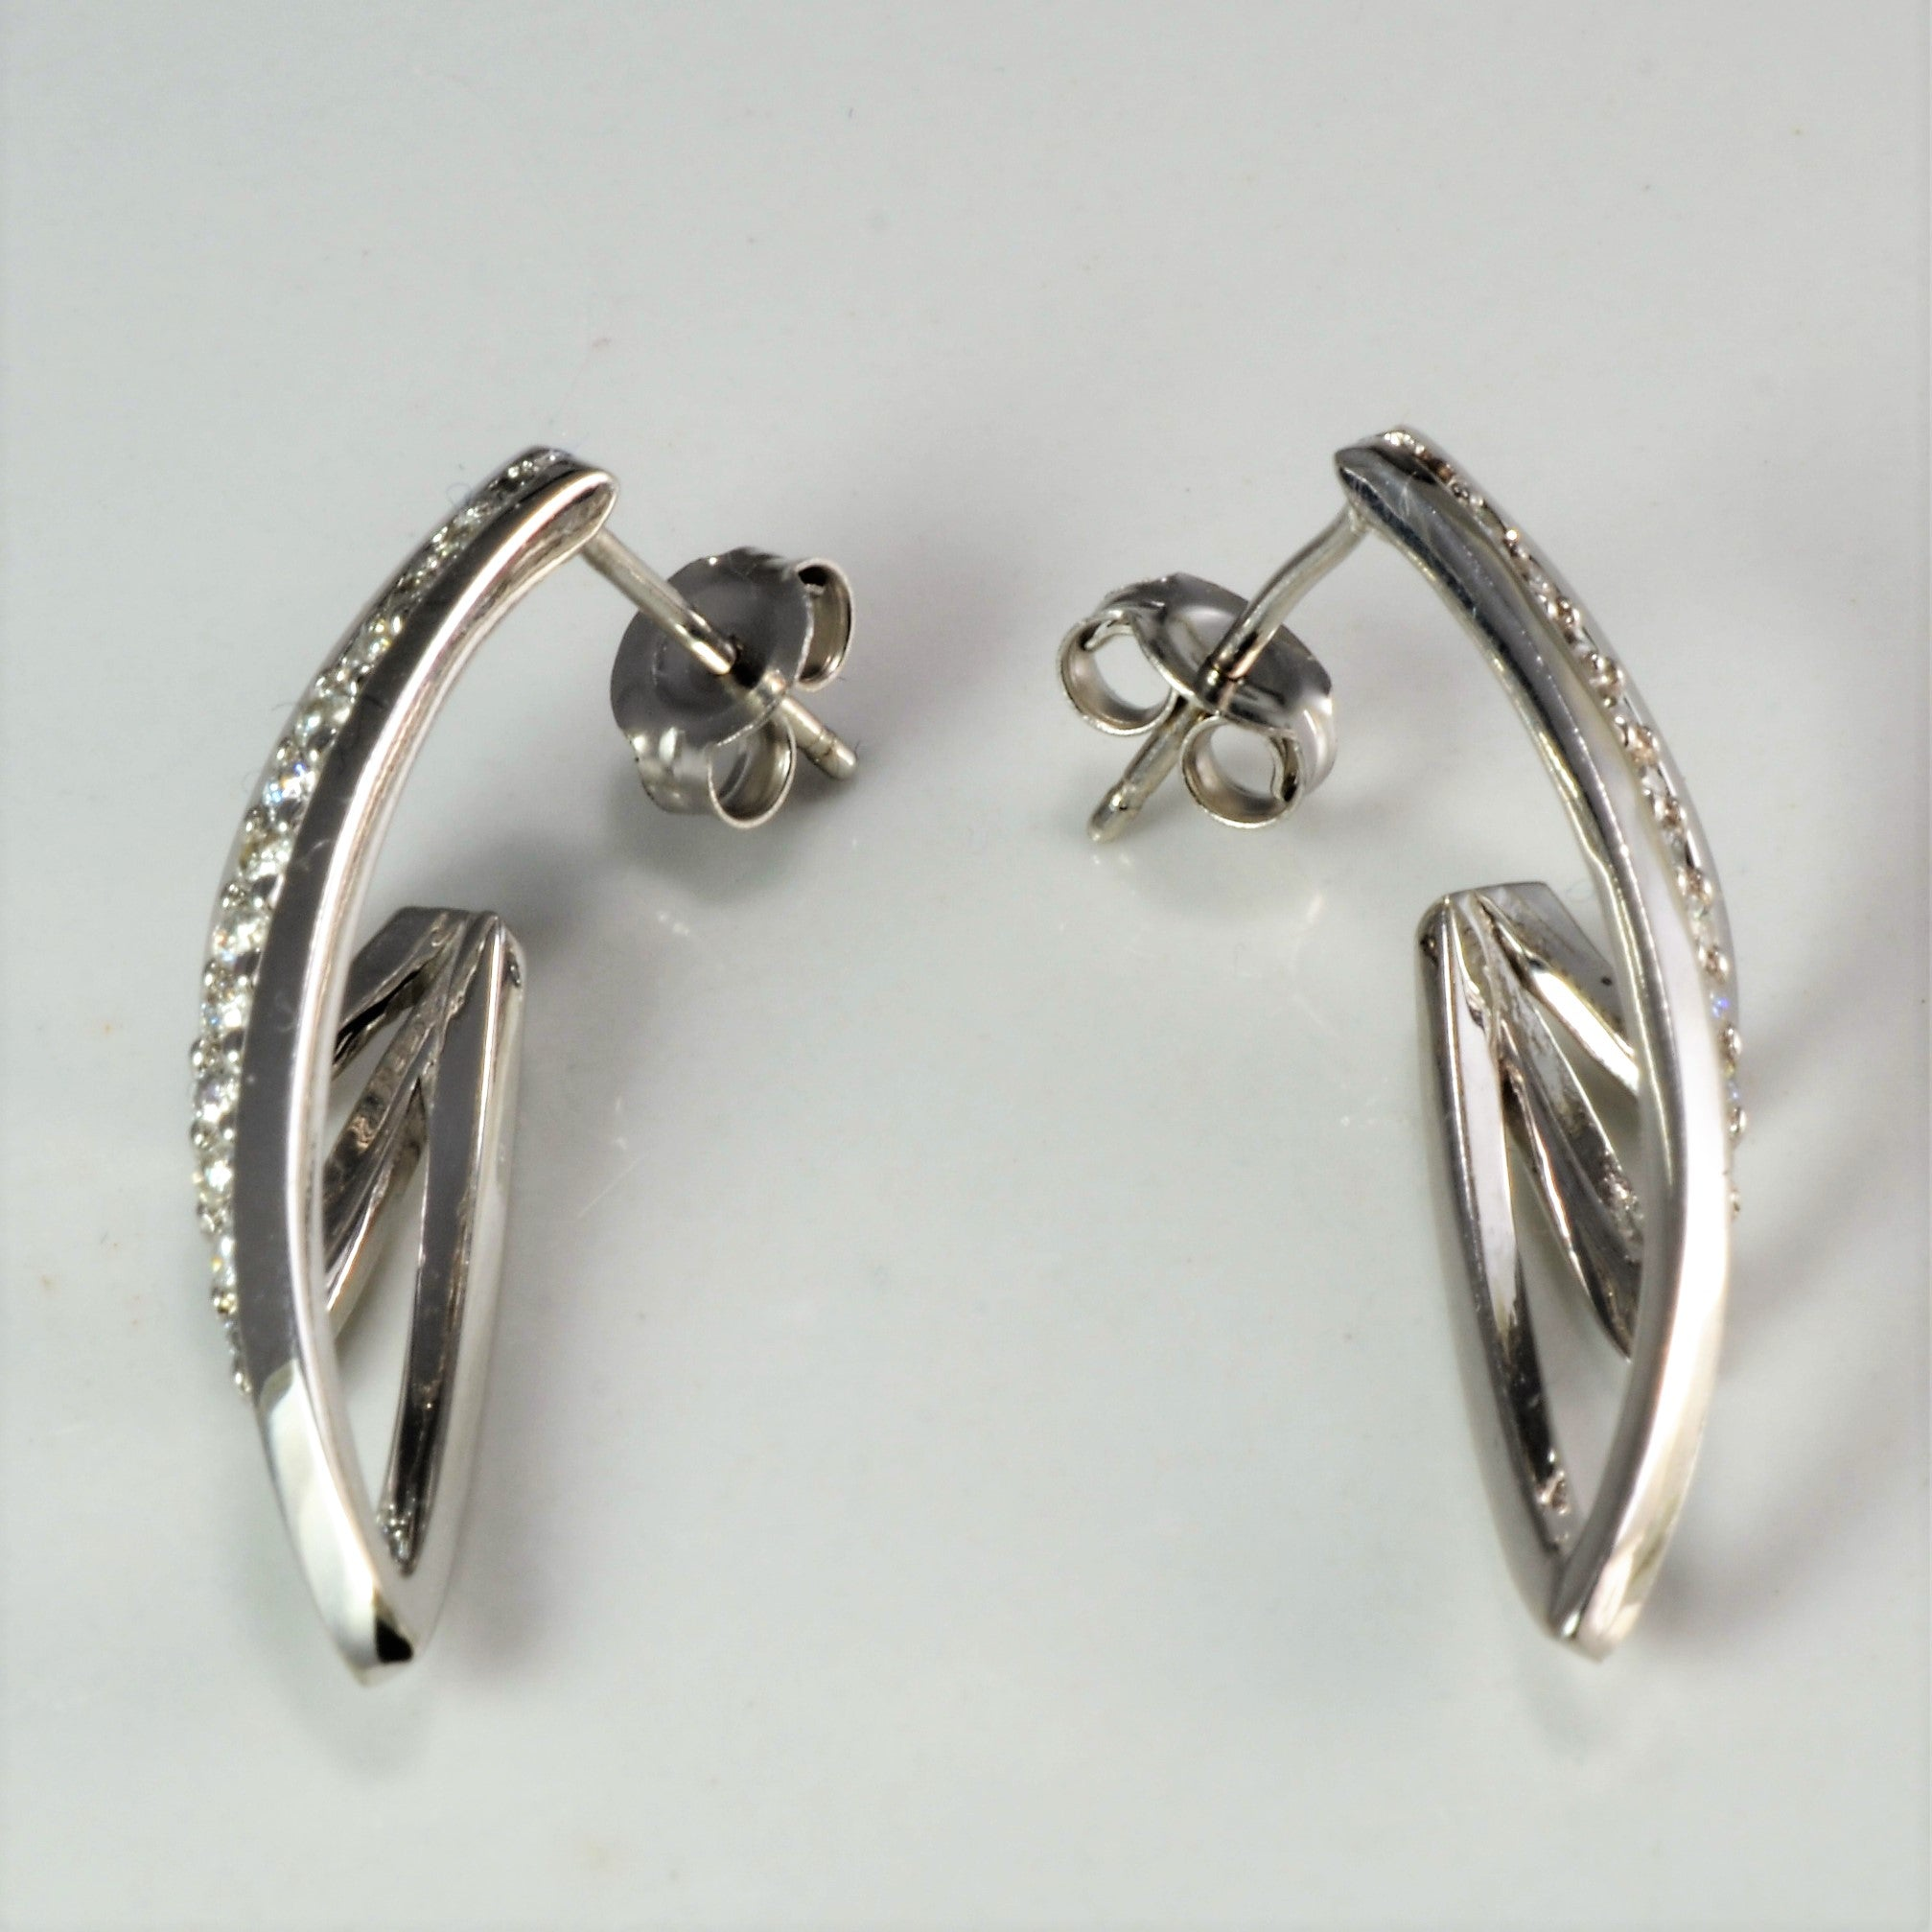 Pave Diamond Textured Earrings | 0.26 ctw |